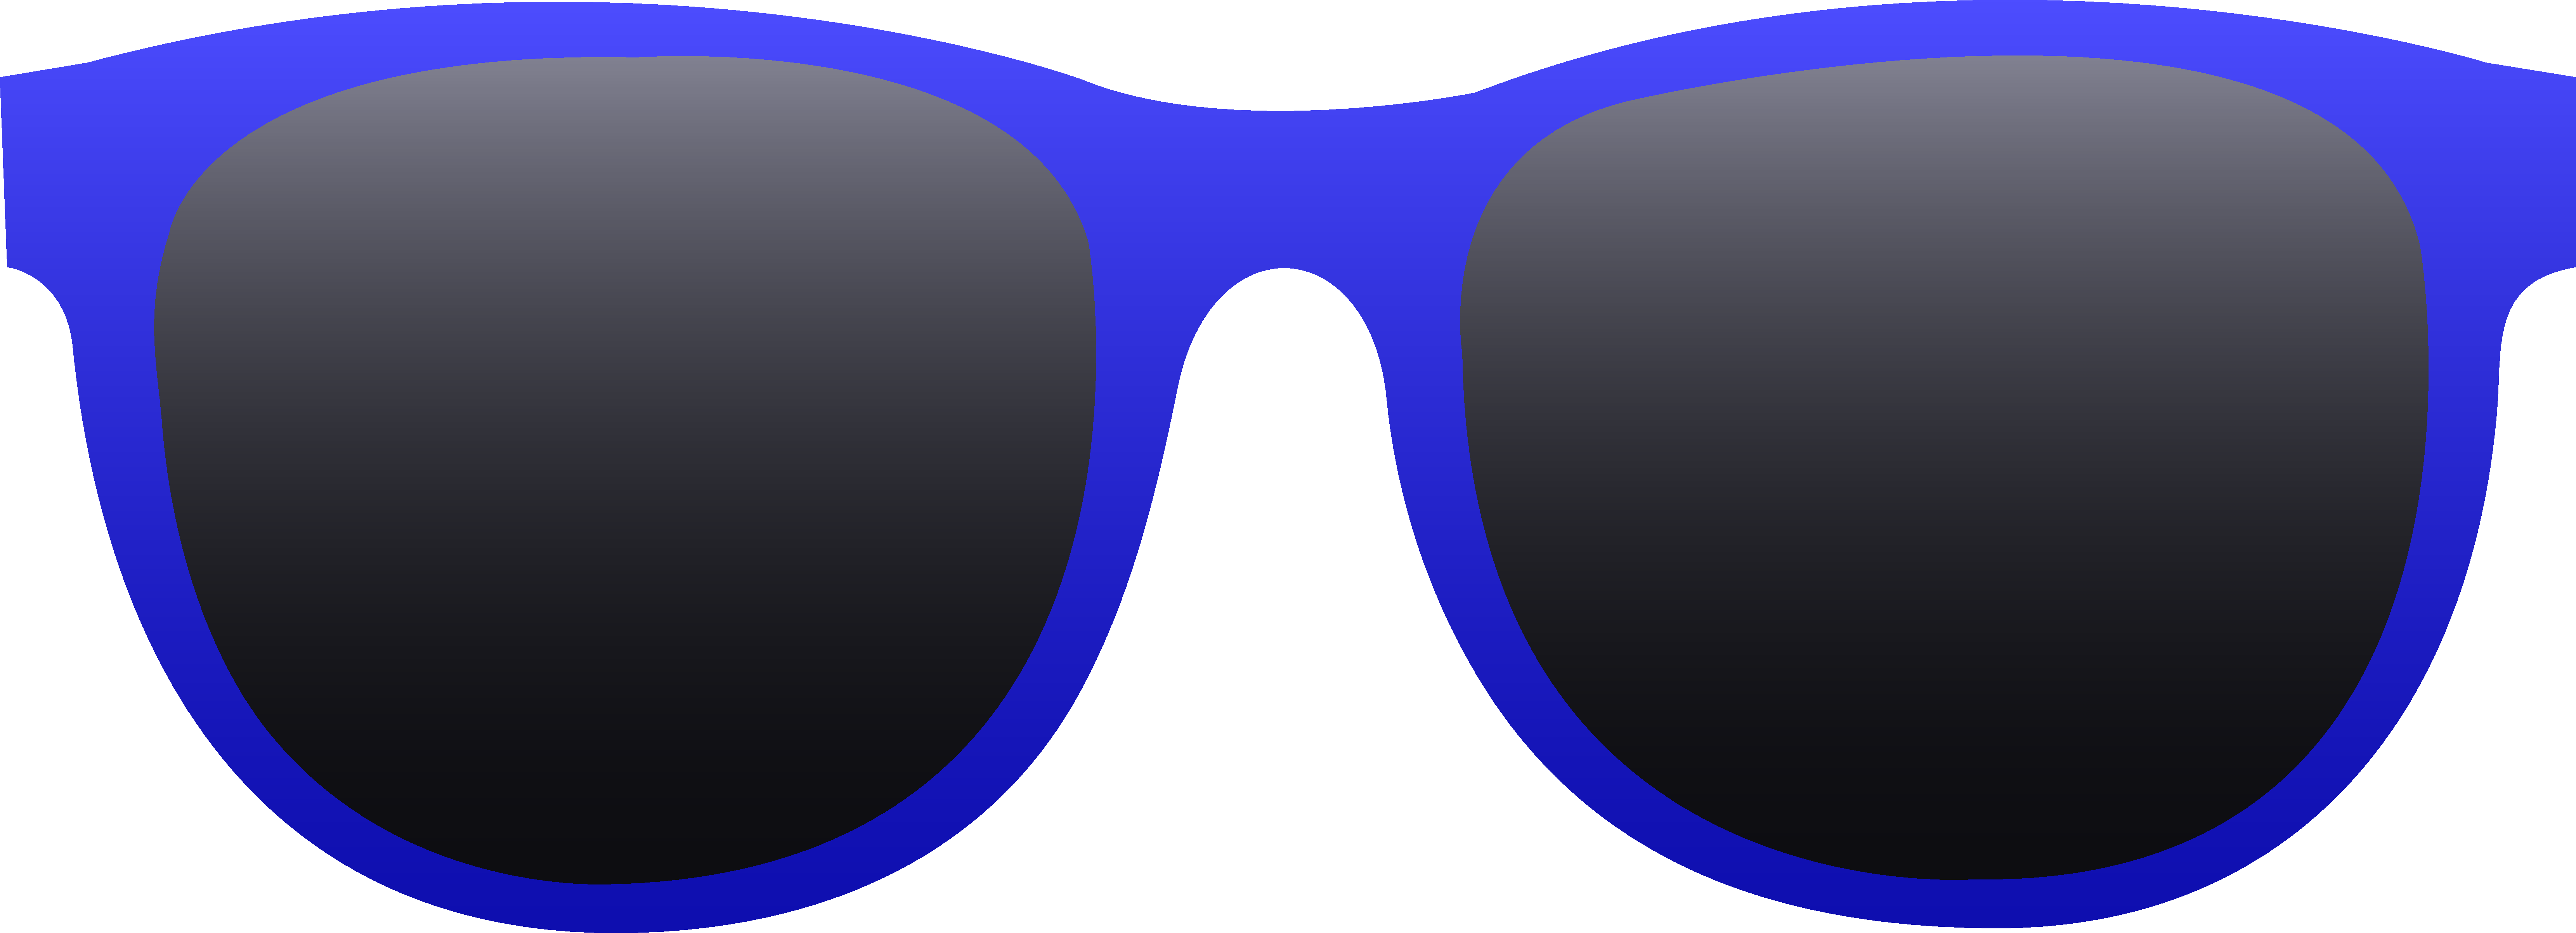 Sunglasses clipart breakfast at tiffany's. Neon png google search